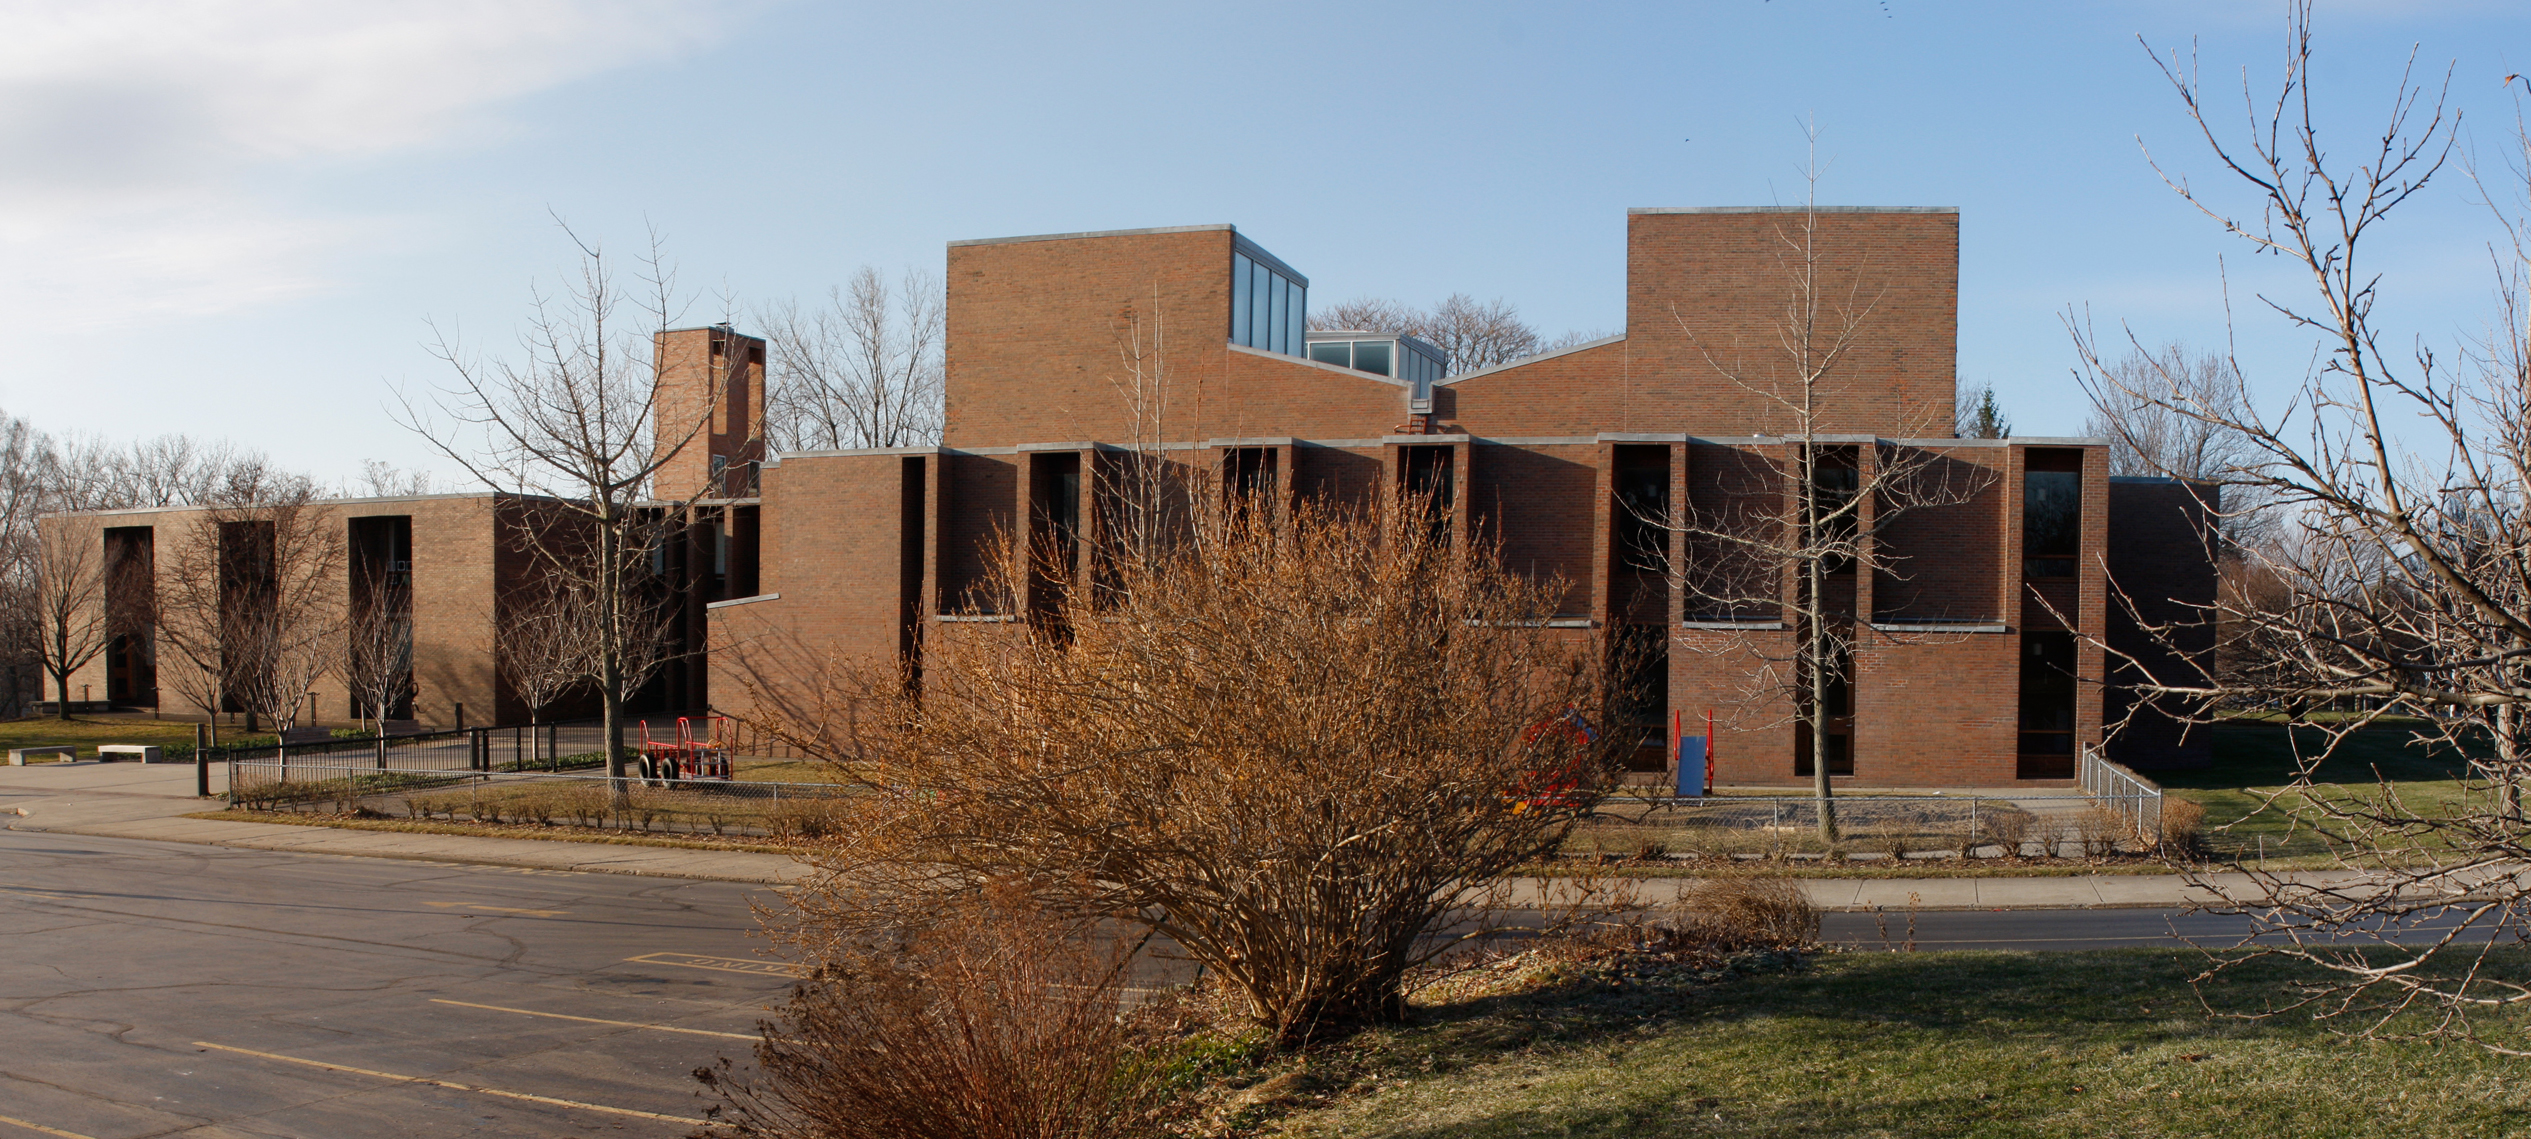 First unitarian church of rochester wikiwand for Architects rochester ny